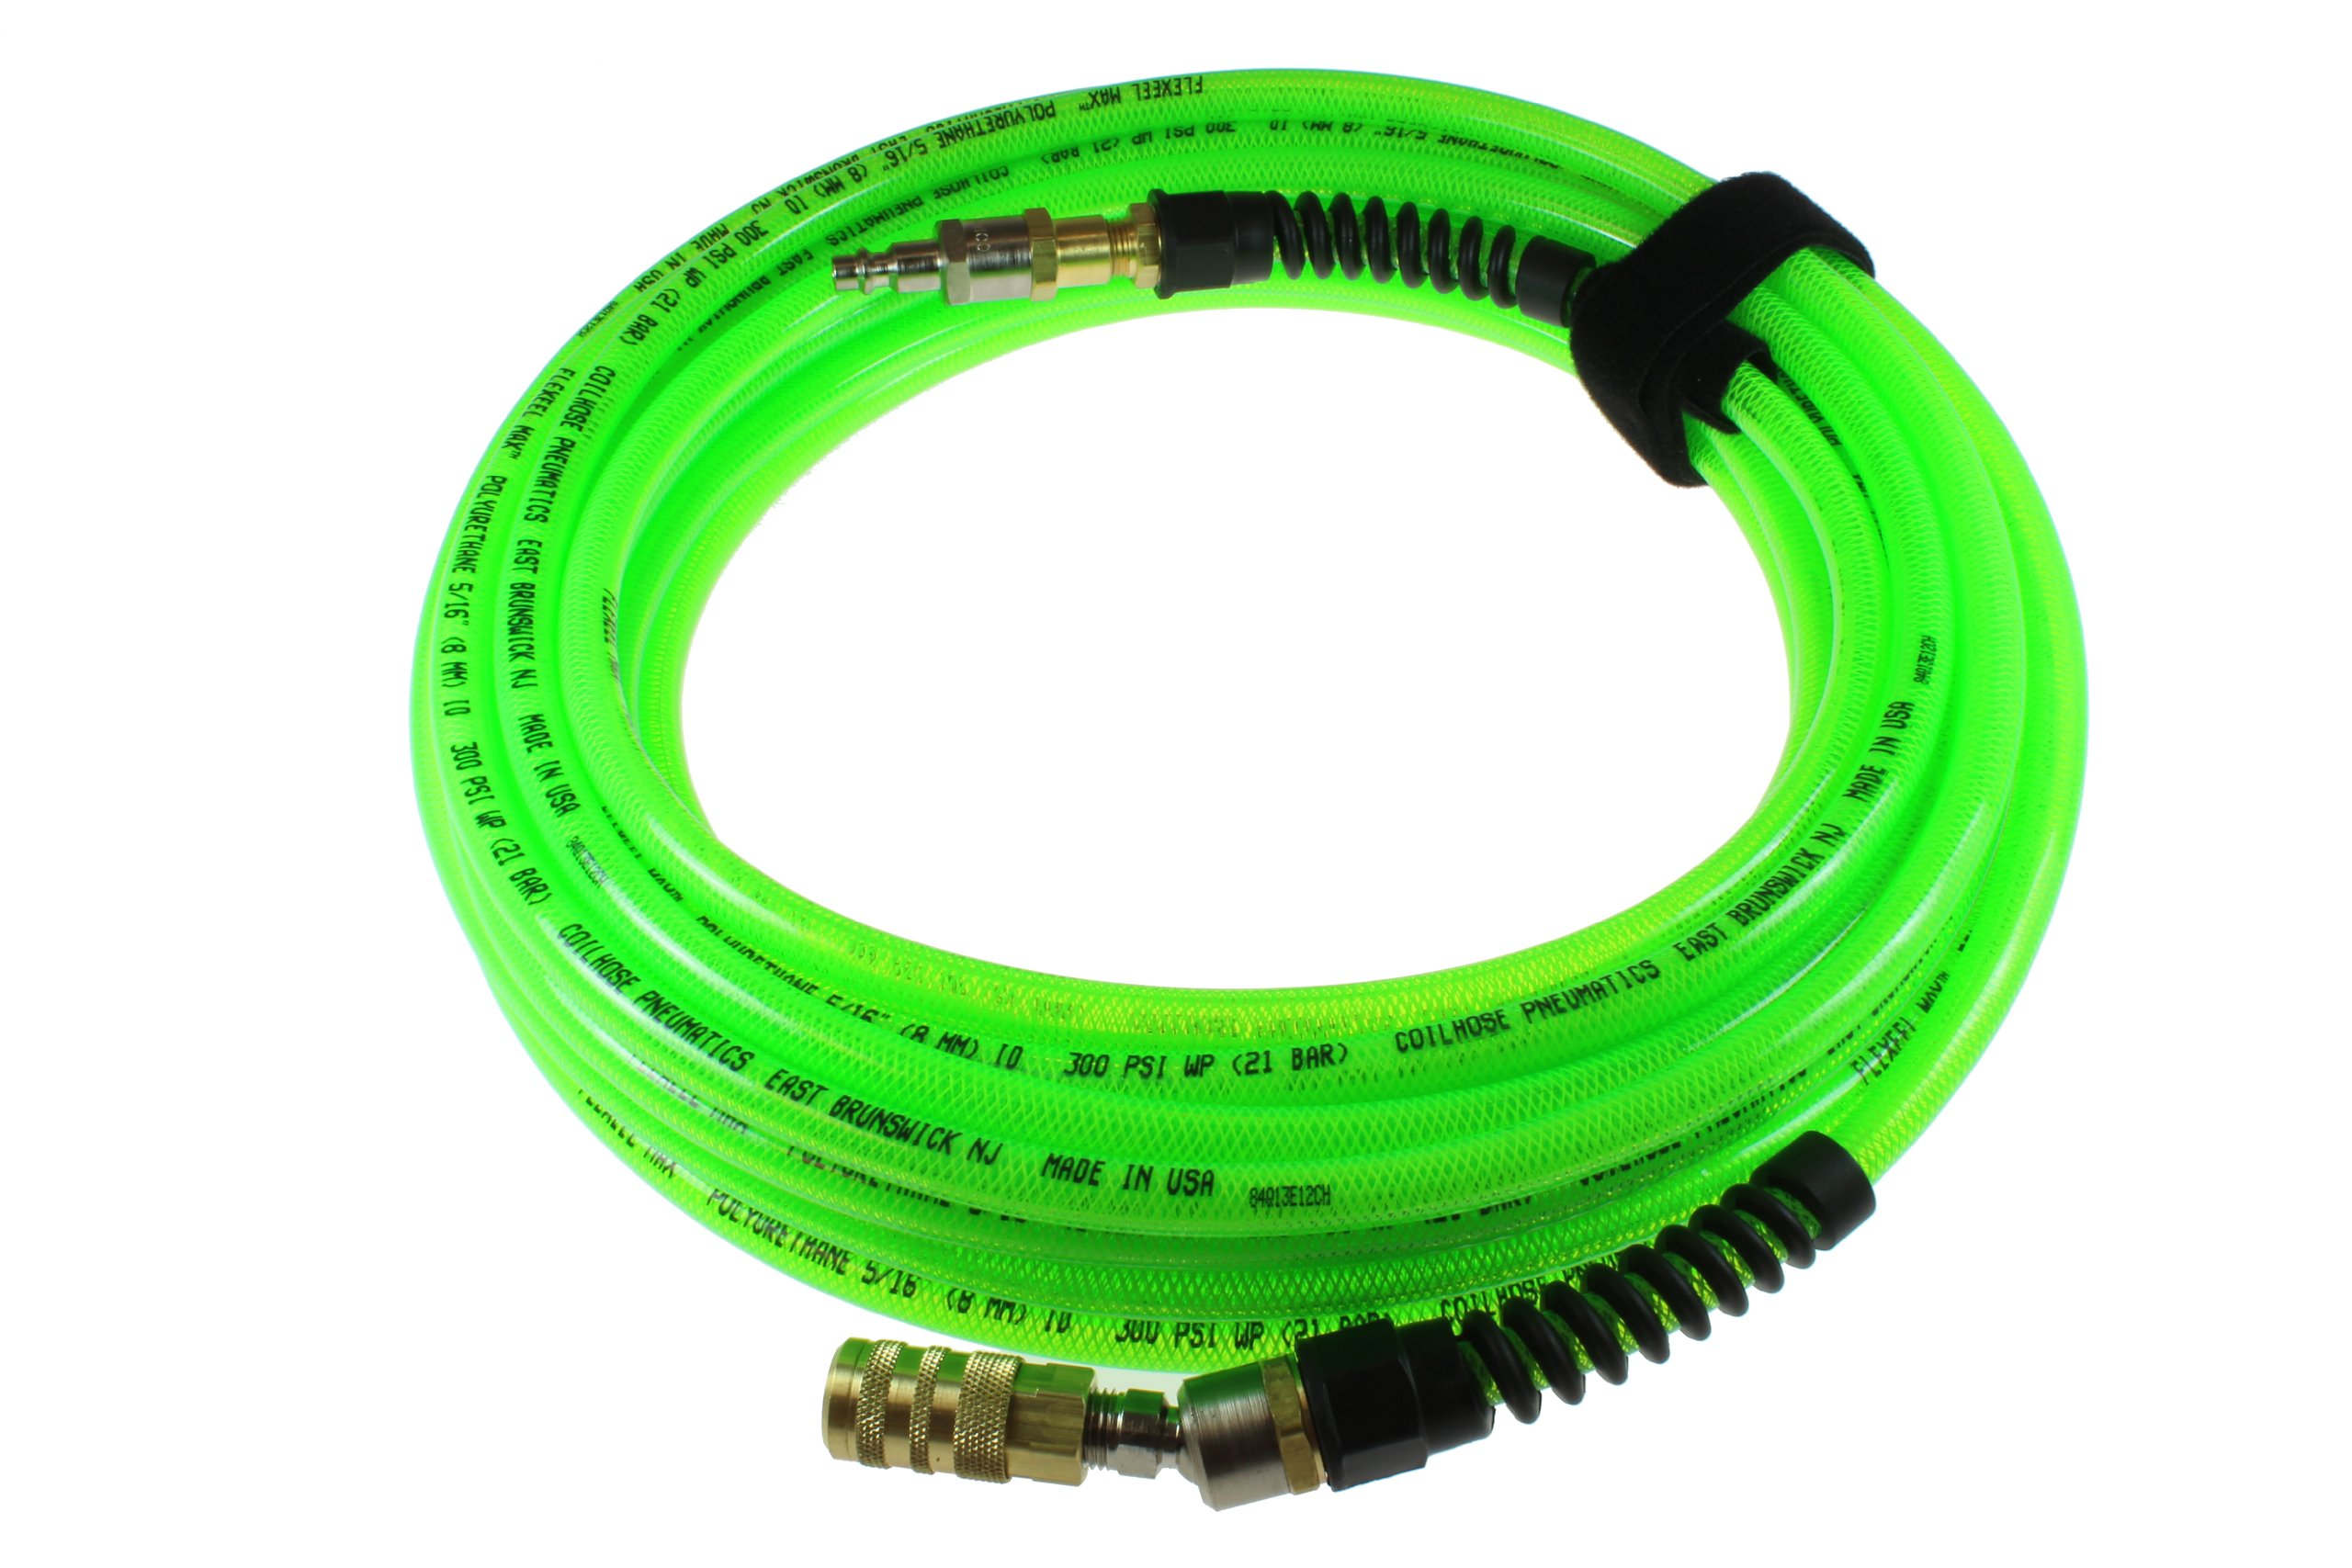 Coilhose Pneumatics PFX6100GS15XS Flexeel Max Reinforced Polyurethane Air Hose, 3/8-Inch ID, 100-Foot Length with 1/4-Inch Ball Swivel Coupler and 1/4-Inch Air Safety Plug, Industrial Interchange by Coilhose Pneumatics